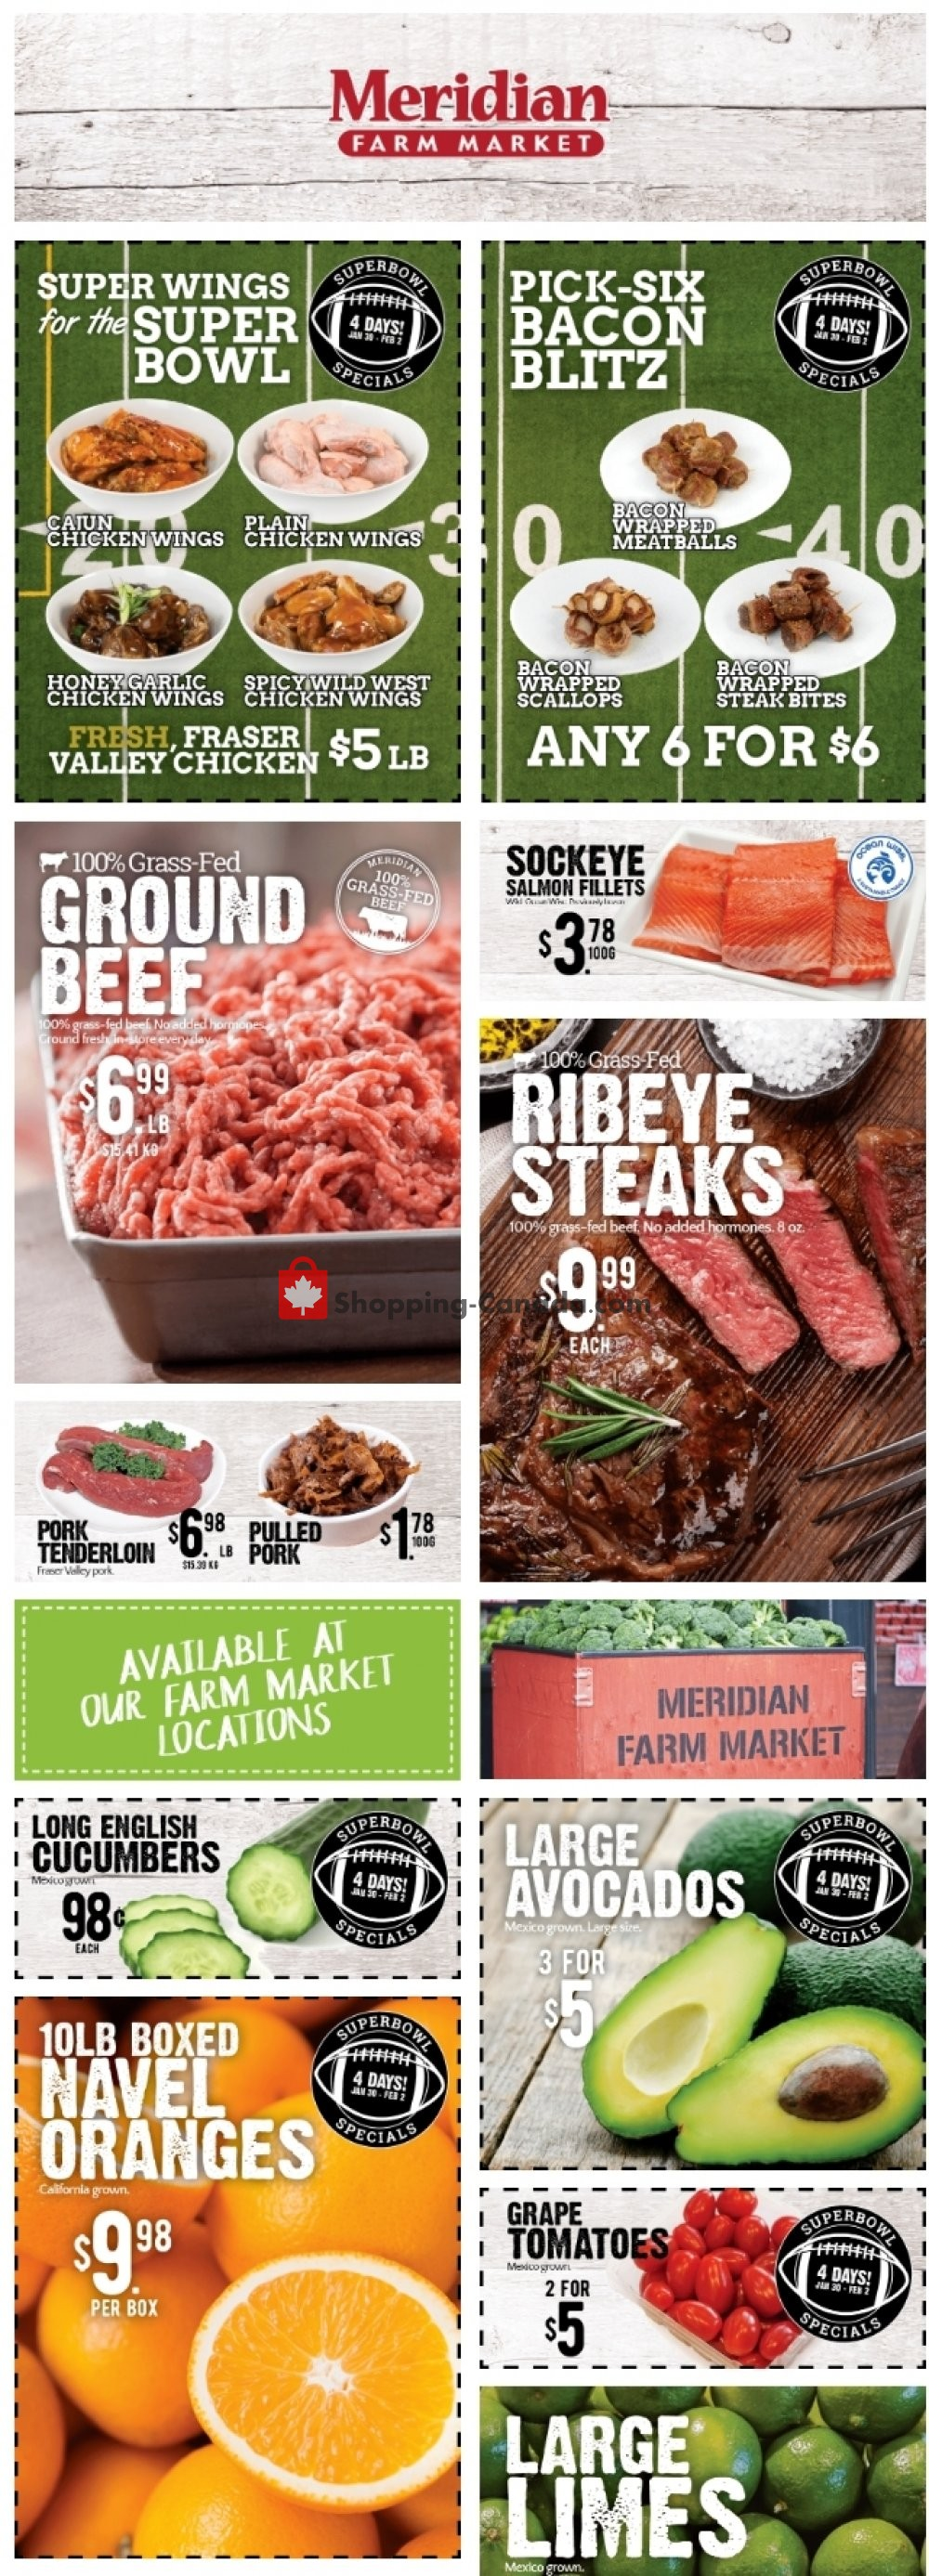 Flyer Meridian Meats & Meridian Farm Market Canada - from Thursday January 30, 2020 to Wednesday February 5, 2020